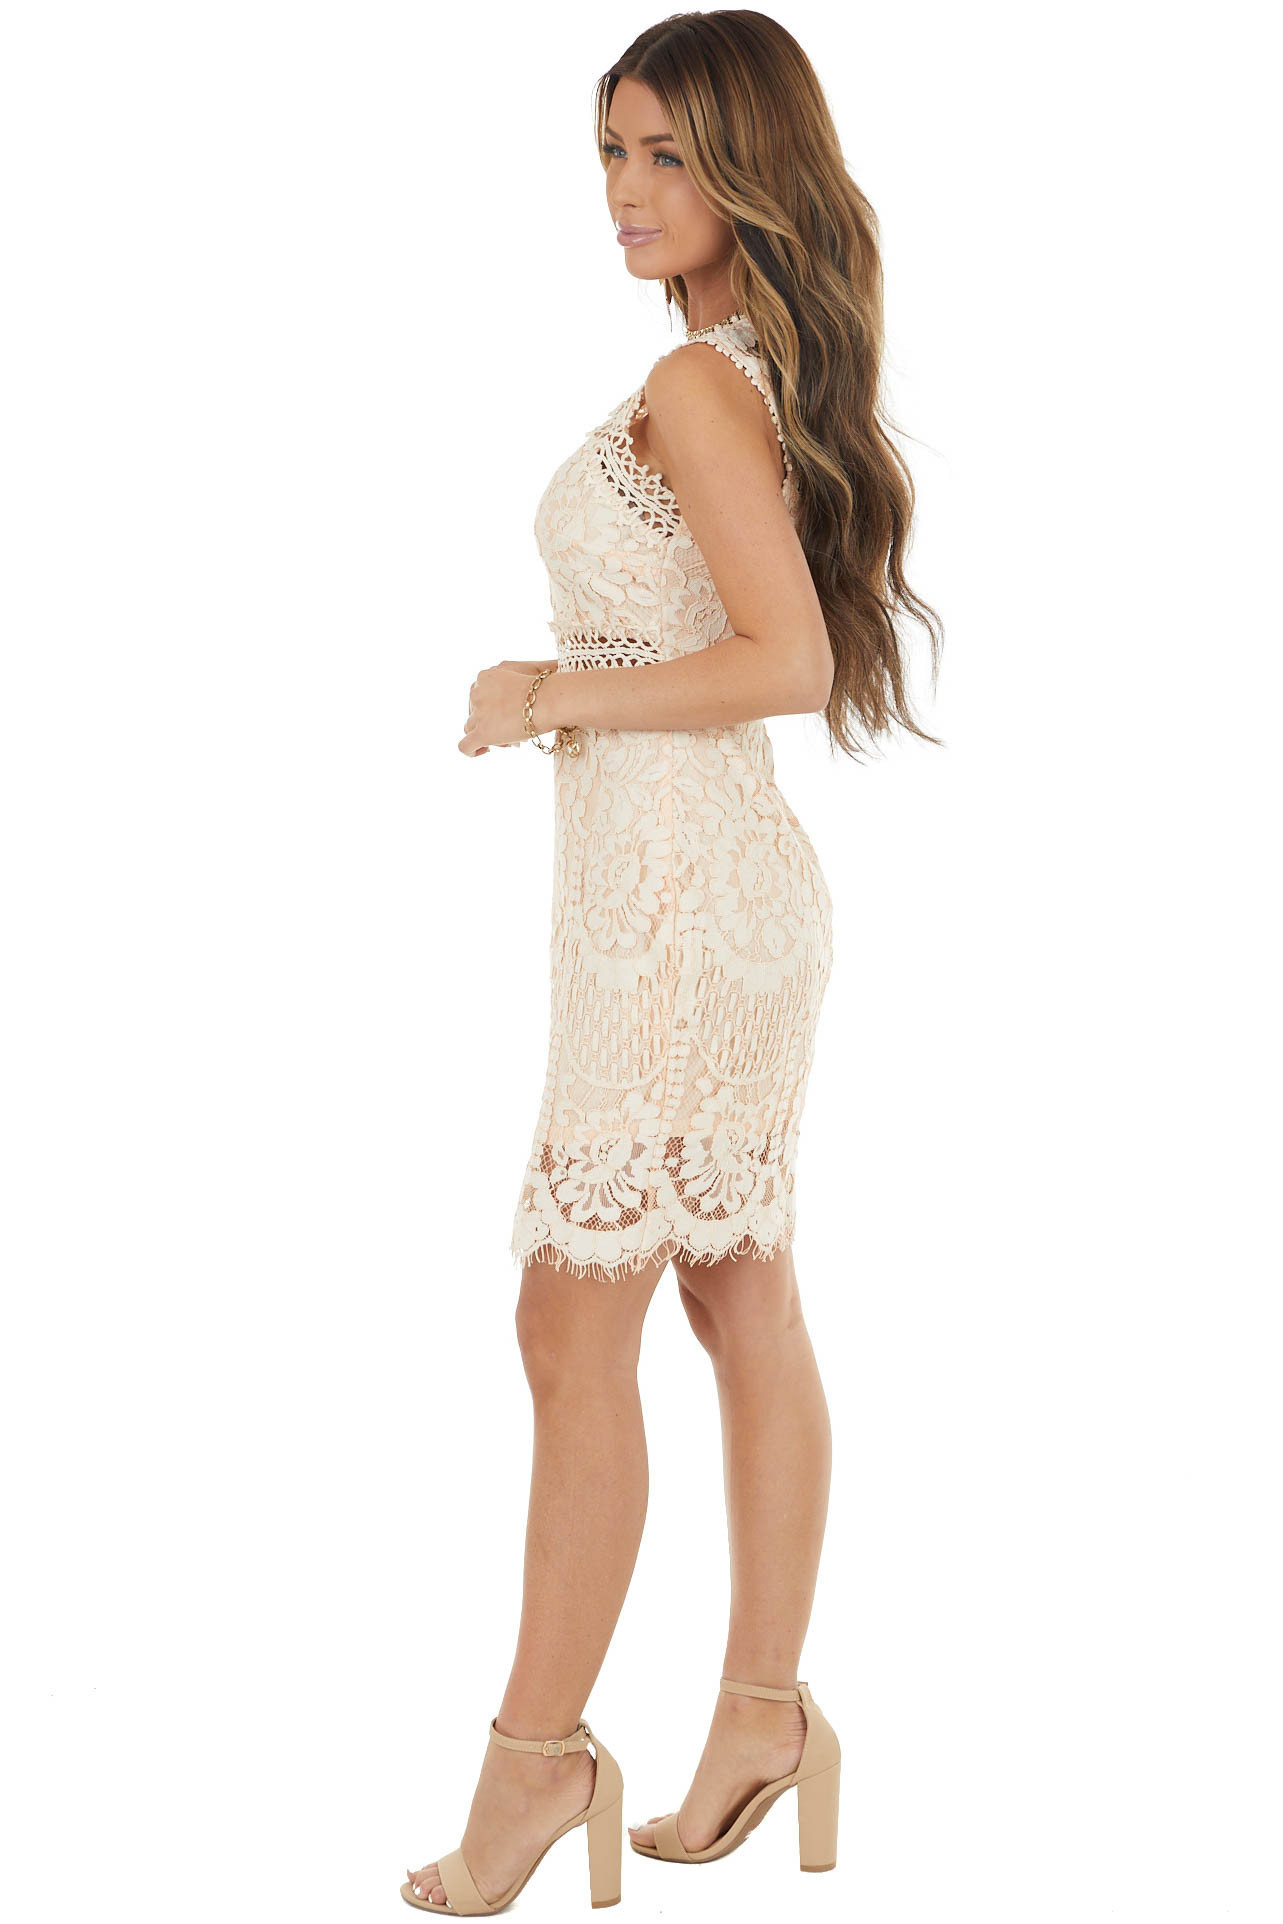 Peach Lace High Neckline Bodycon Dress with Sheer Details